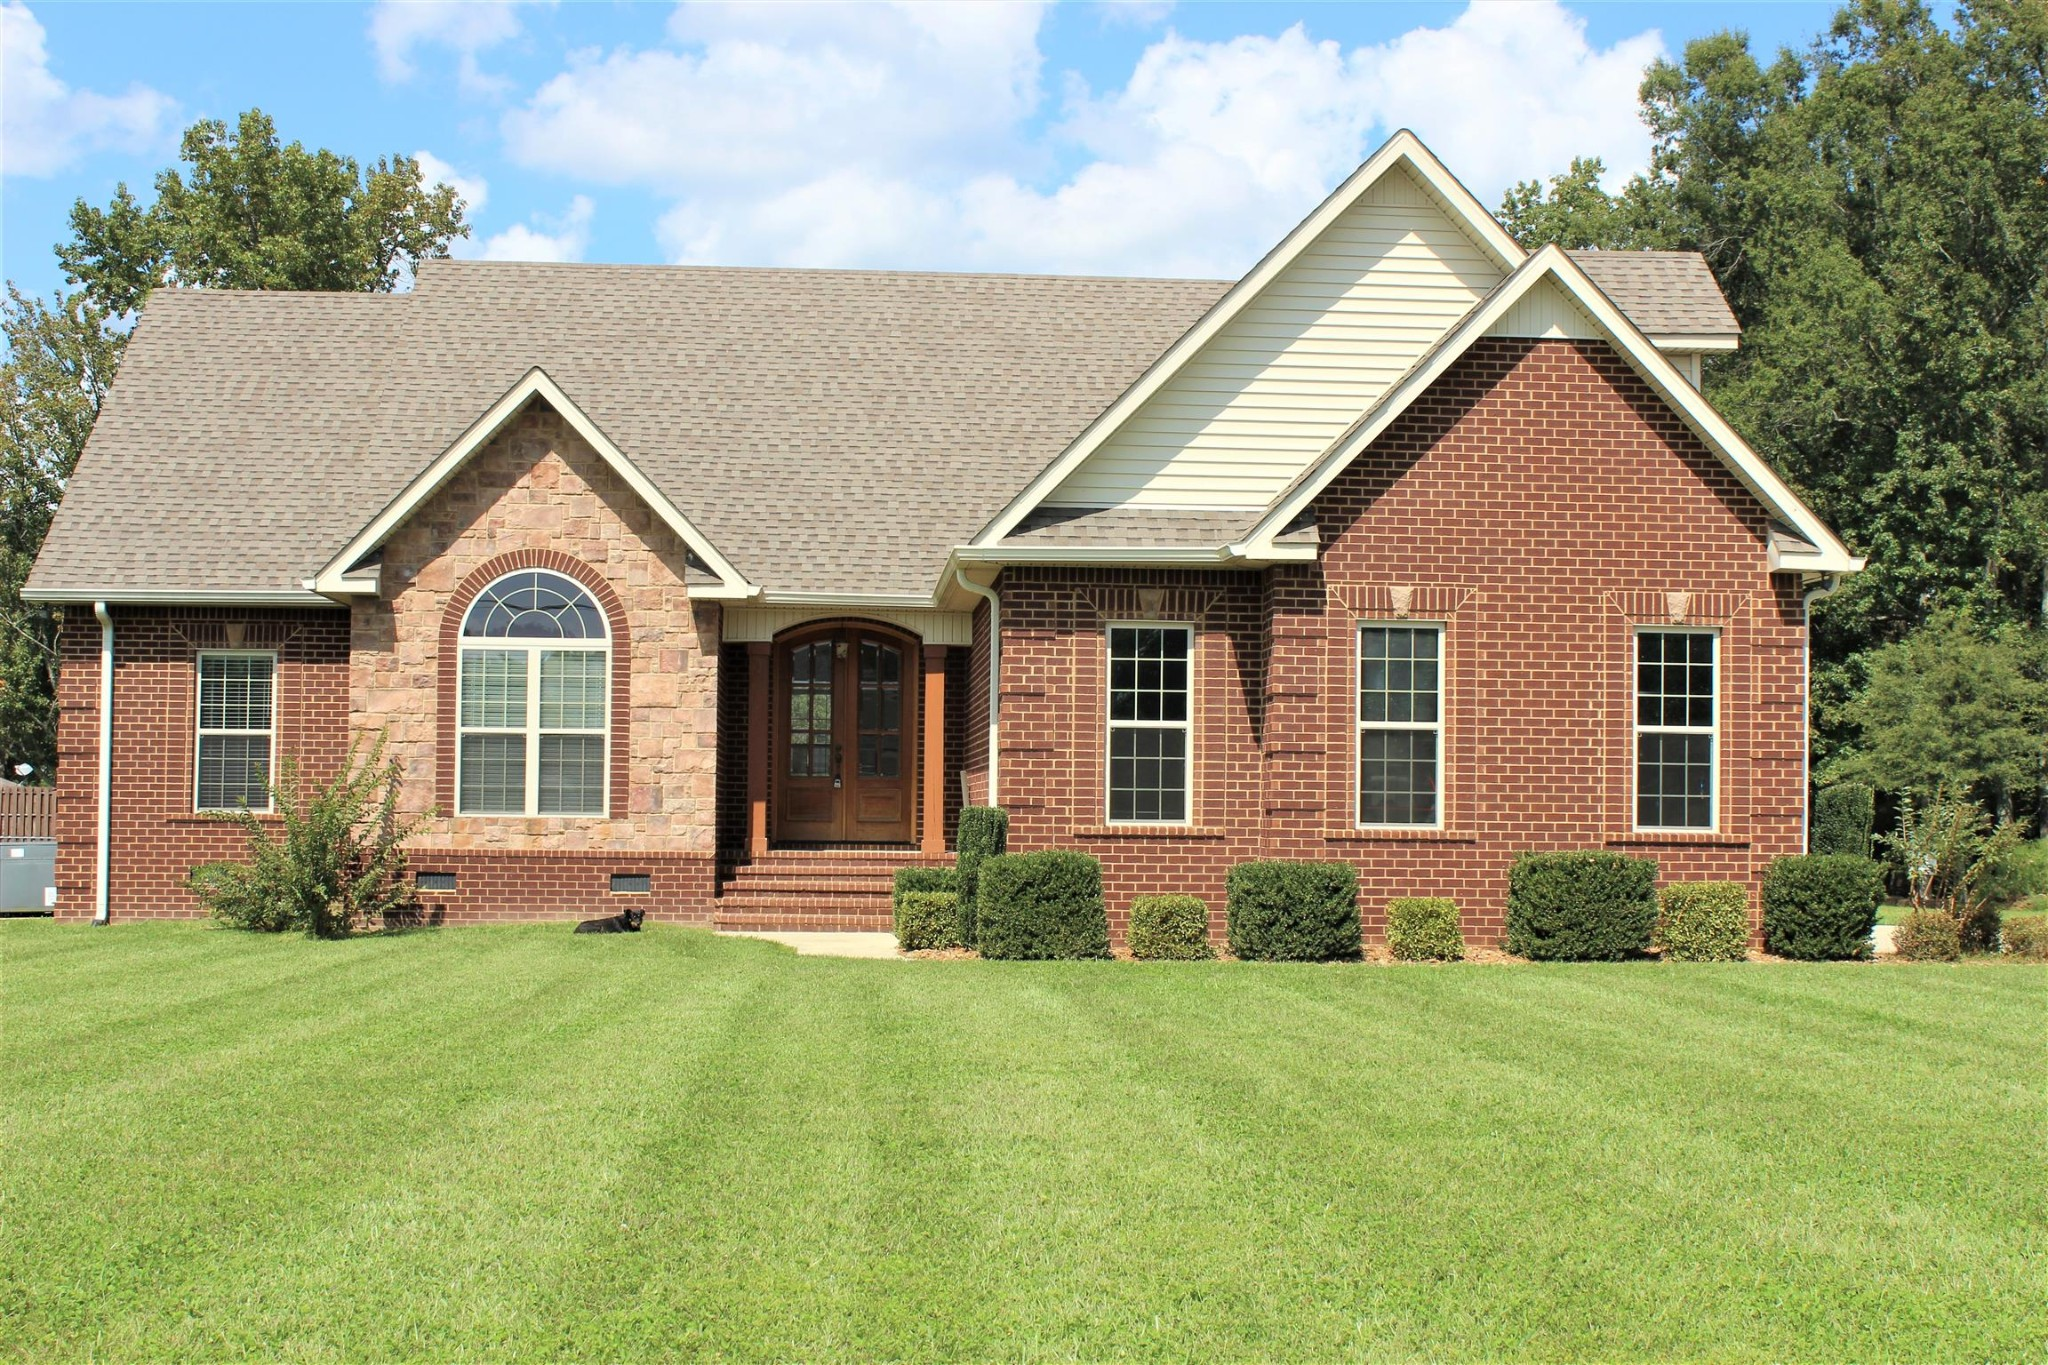 71 Bruce Dr, Manchester, TN 37355 - Manchester, TN real estate listing